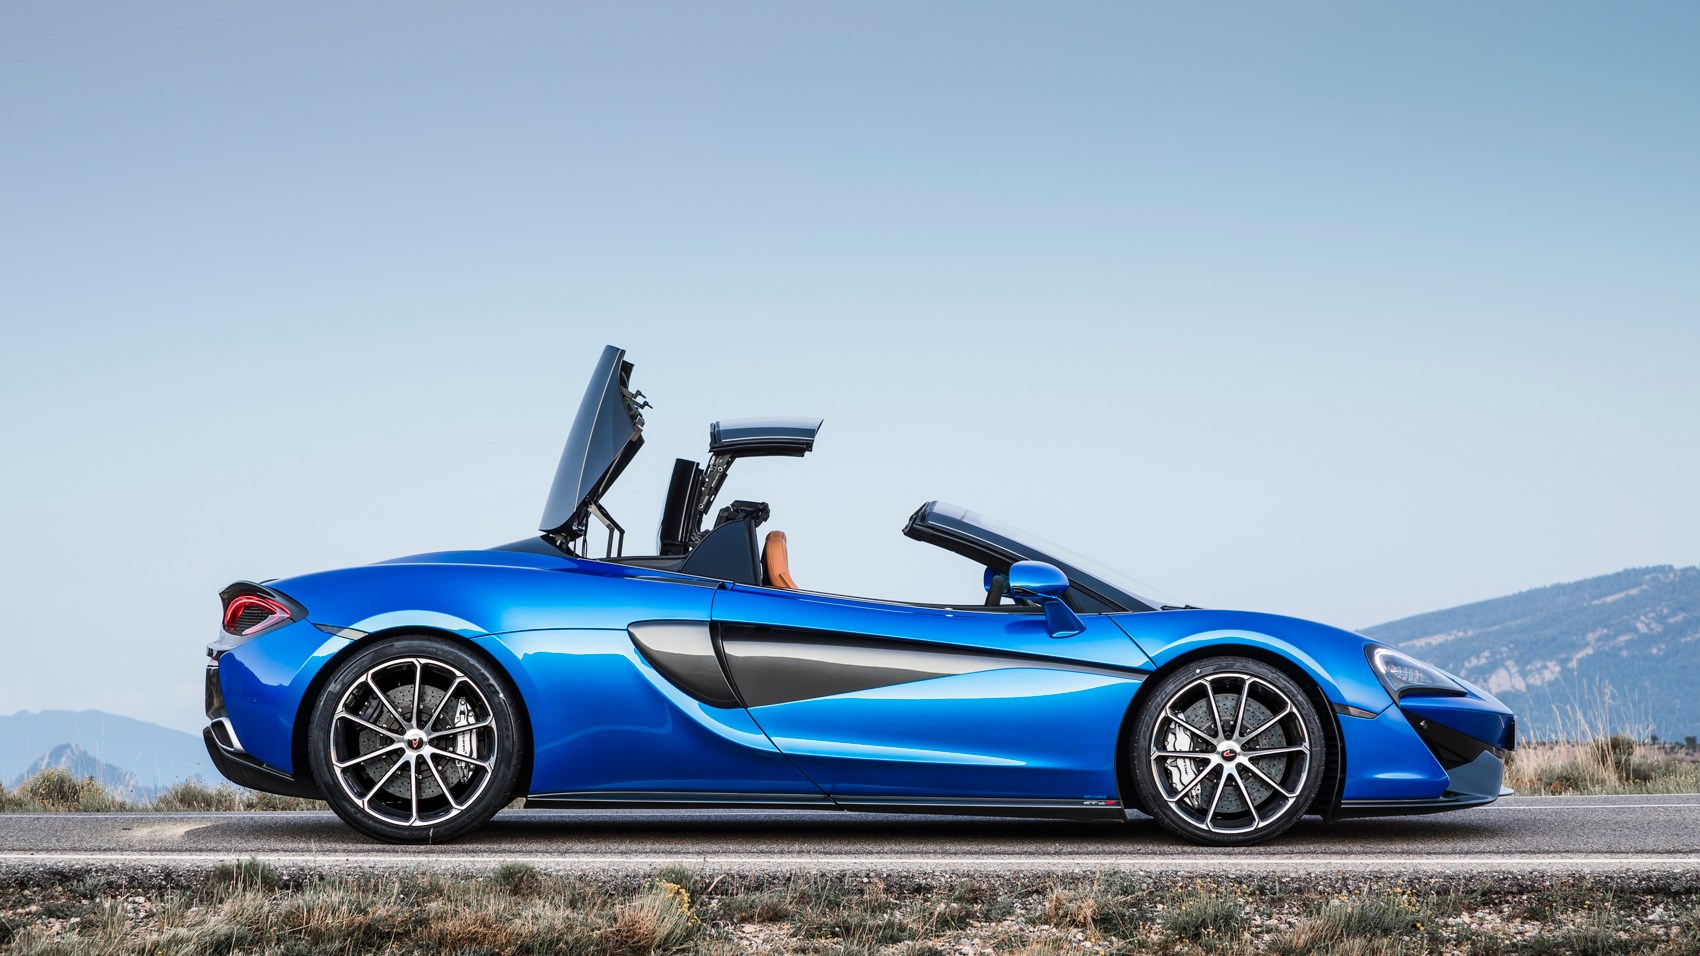 Mclaren Price 2017 >> McLaren 570S Spider (2017) review by CAR Magazine